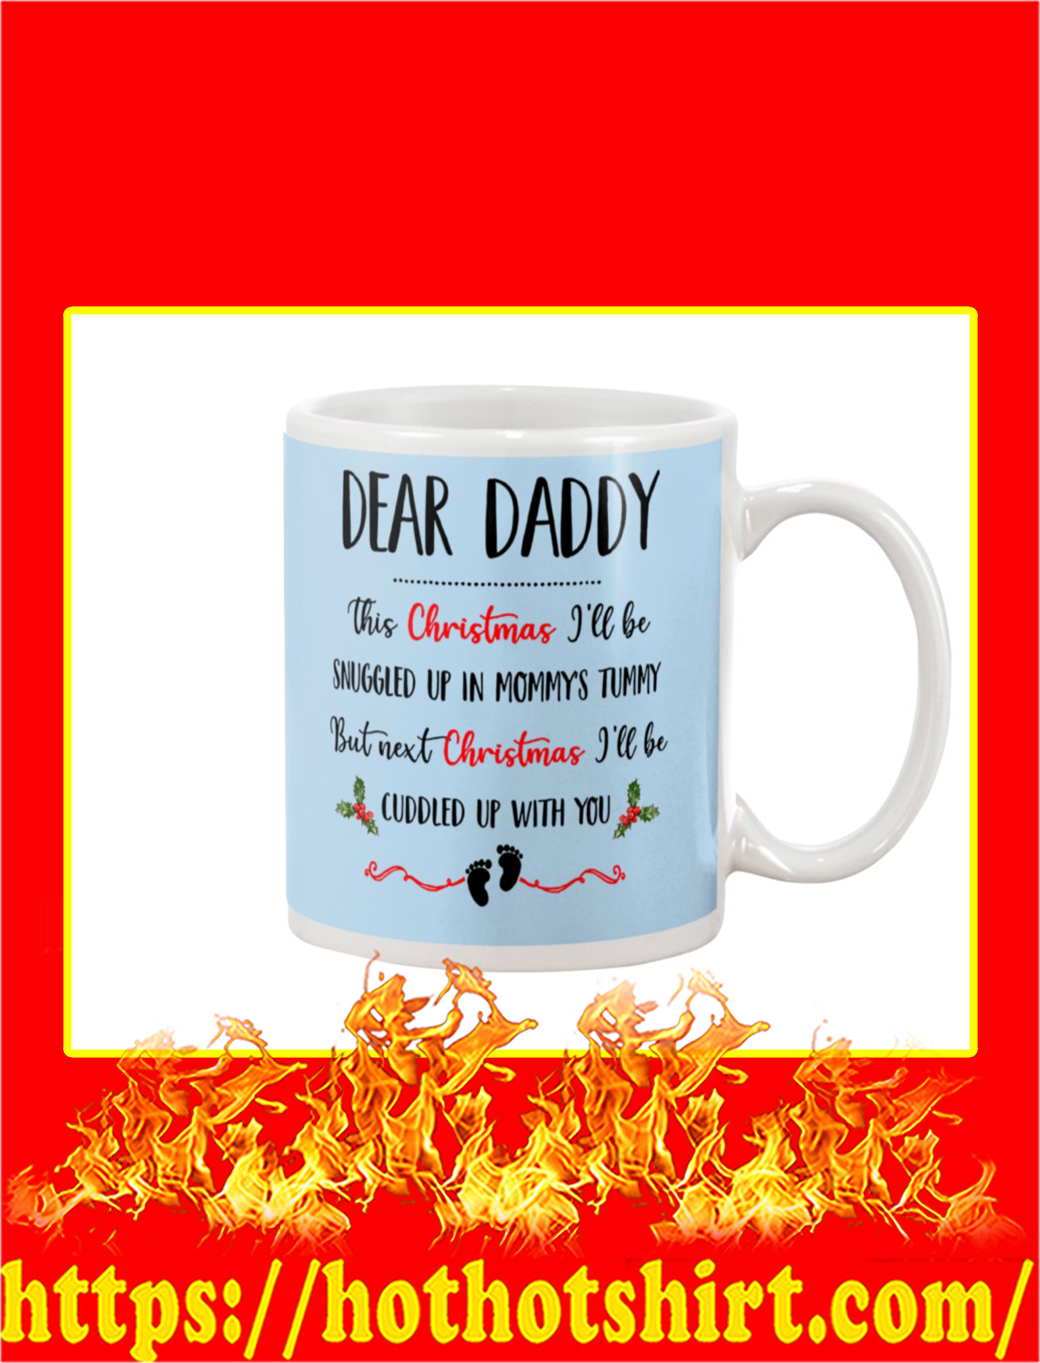 Dear Daddy This Christmas I'll Be Snuggled Up In Mommy's Tummy Mug- light blue